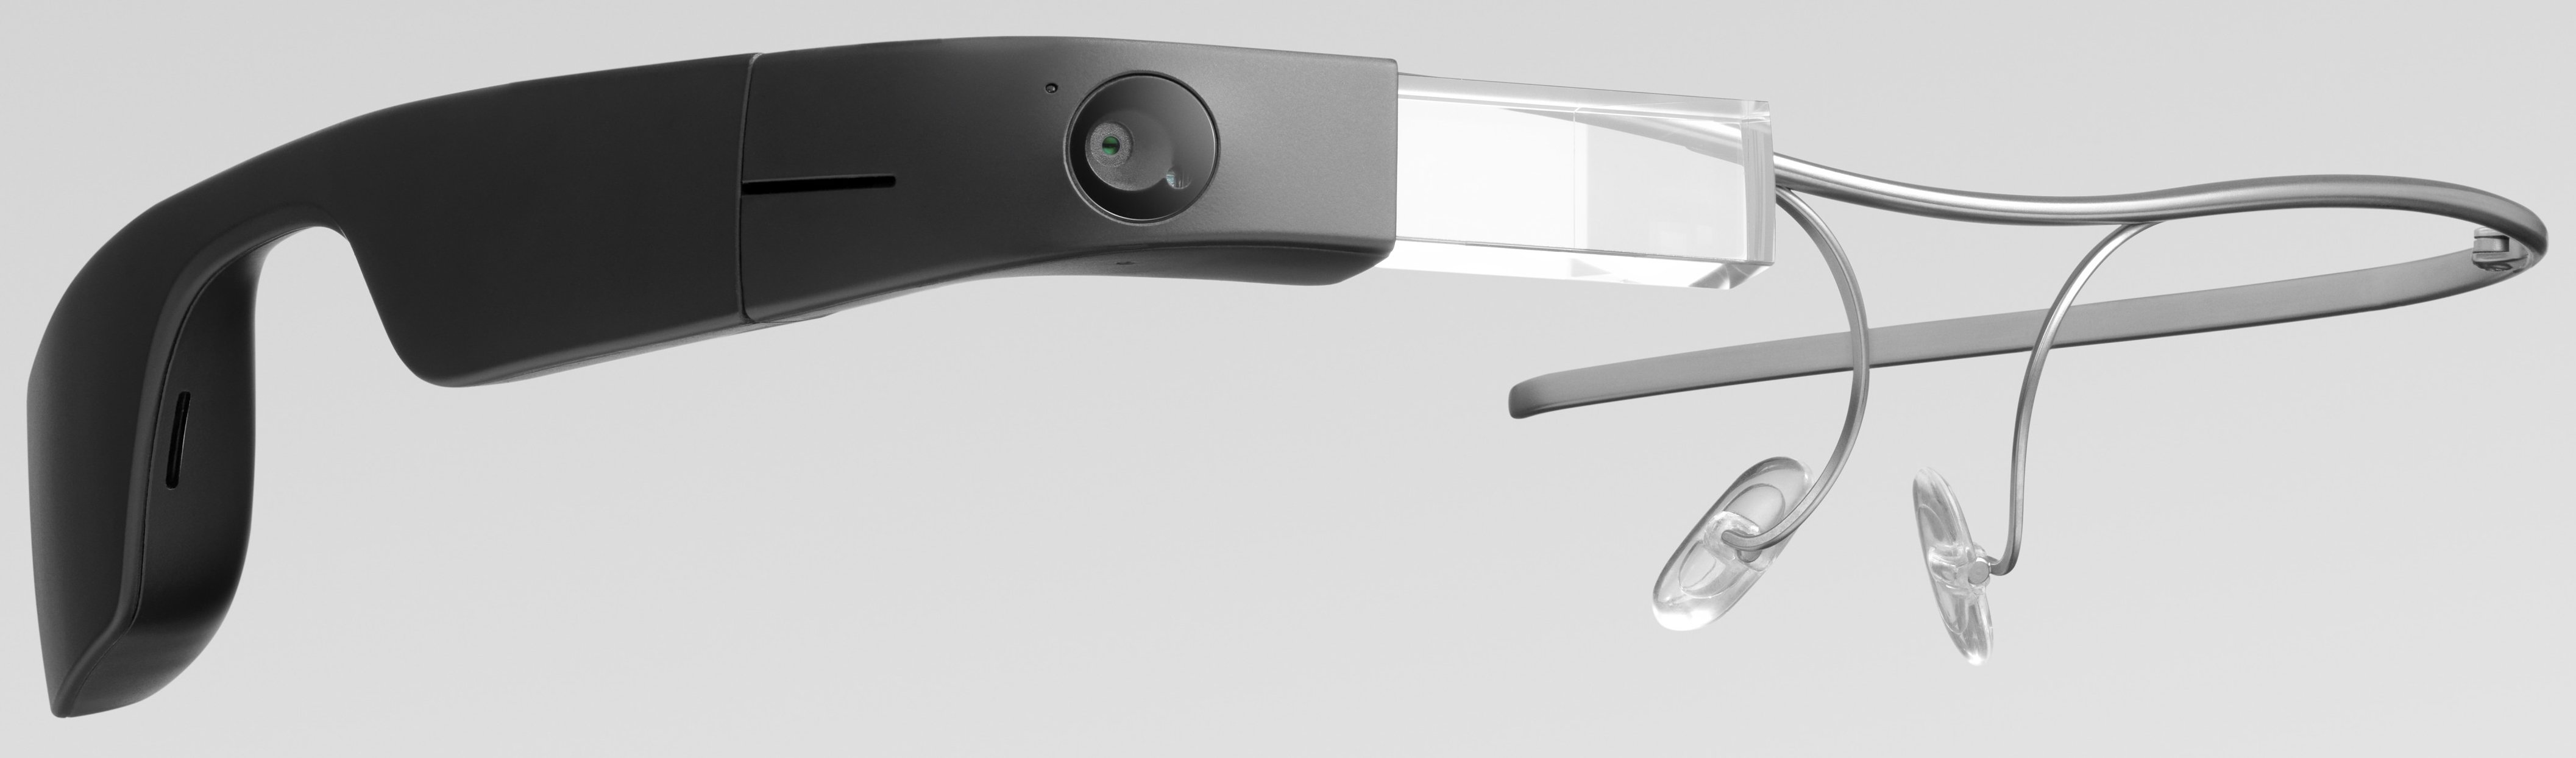 Google Glass Enterprise Edition 2 camsız sol çapraz görseli, çerçevesiz Google Glass 2